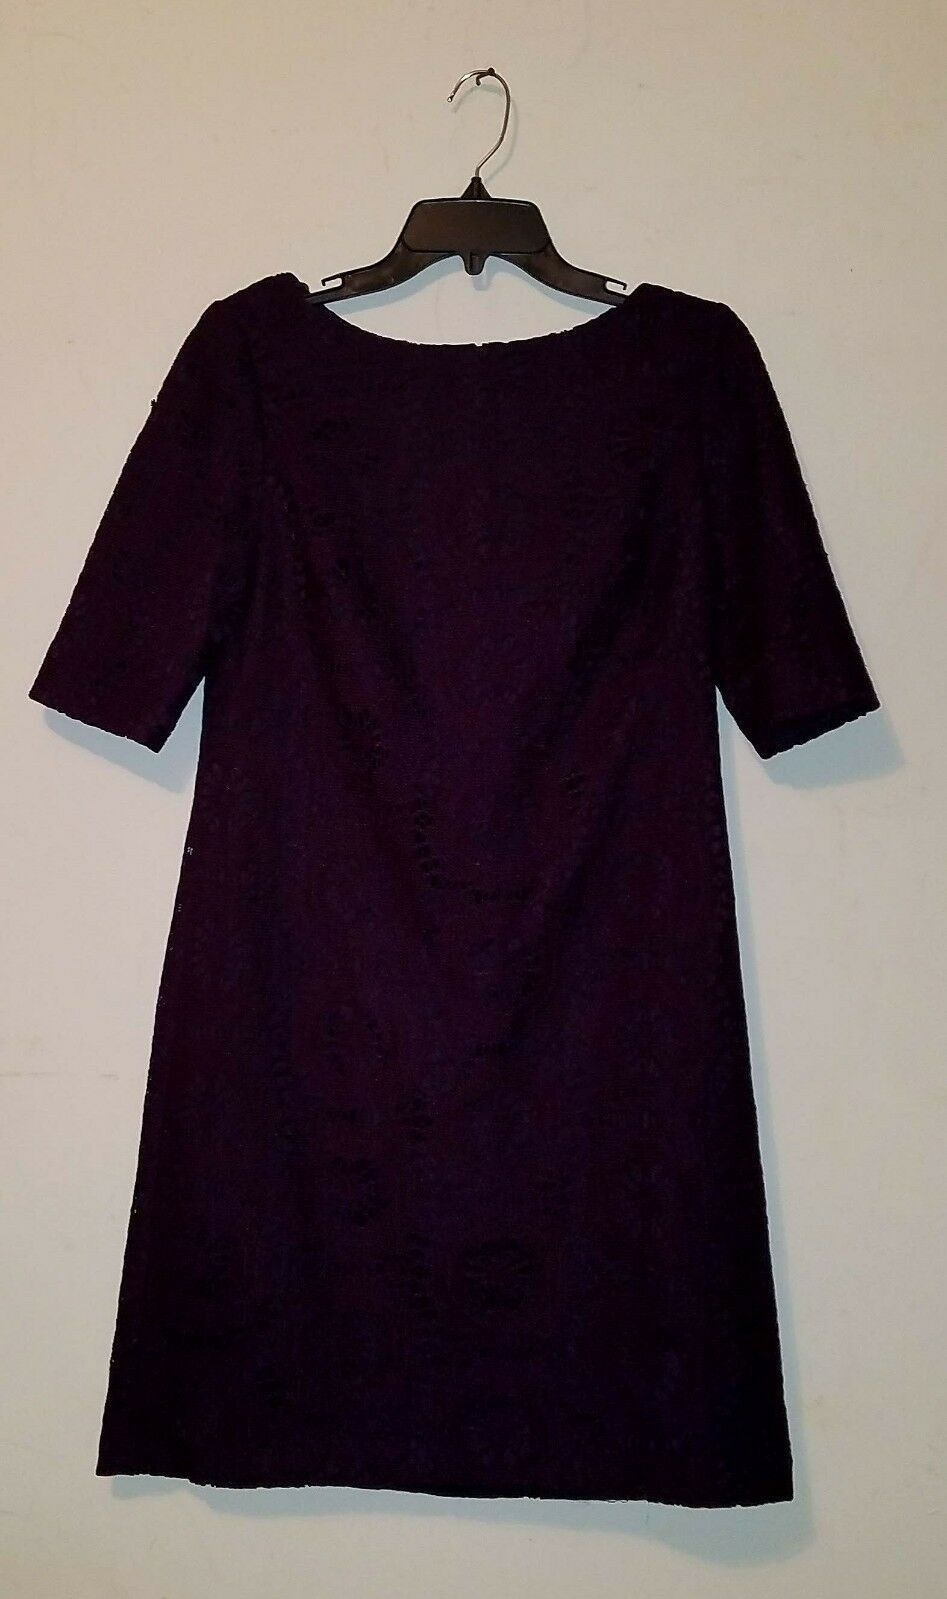 12e780b59a4 NWOT Adrianna Papell Patterned Perforated Dress Purple 8 Women sz ...